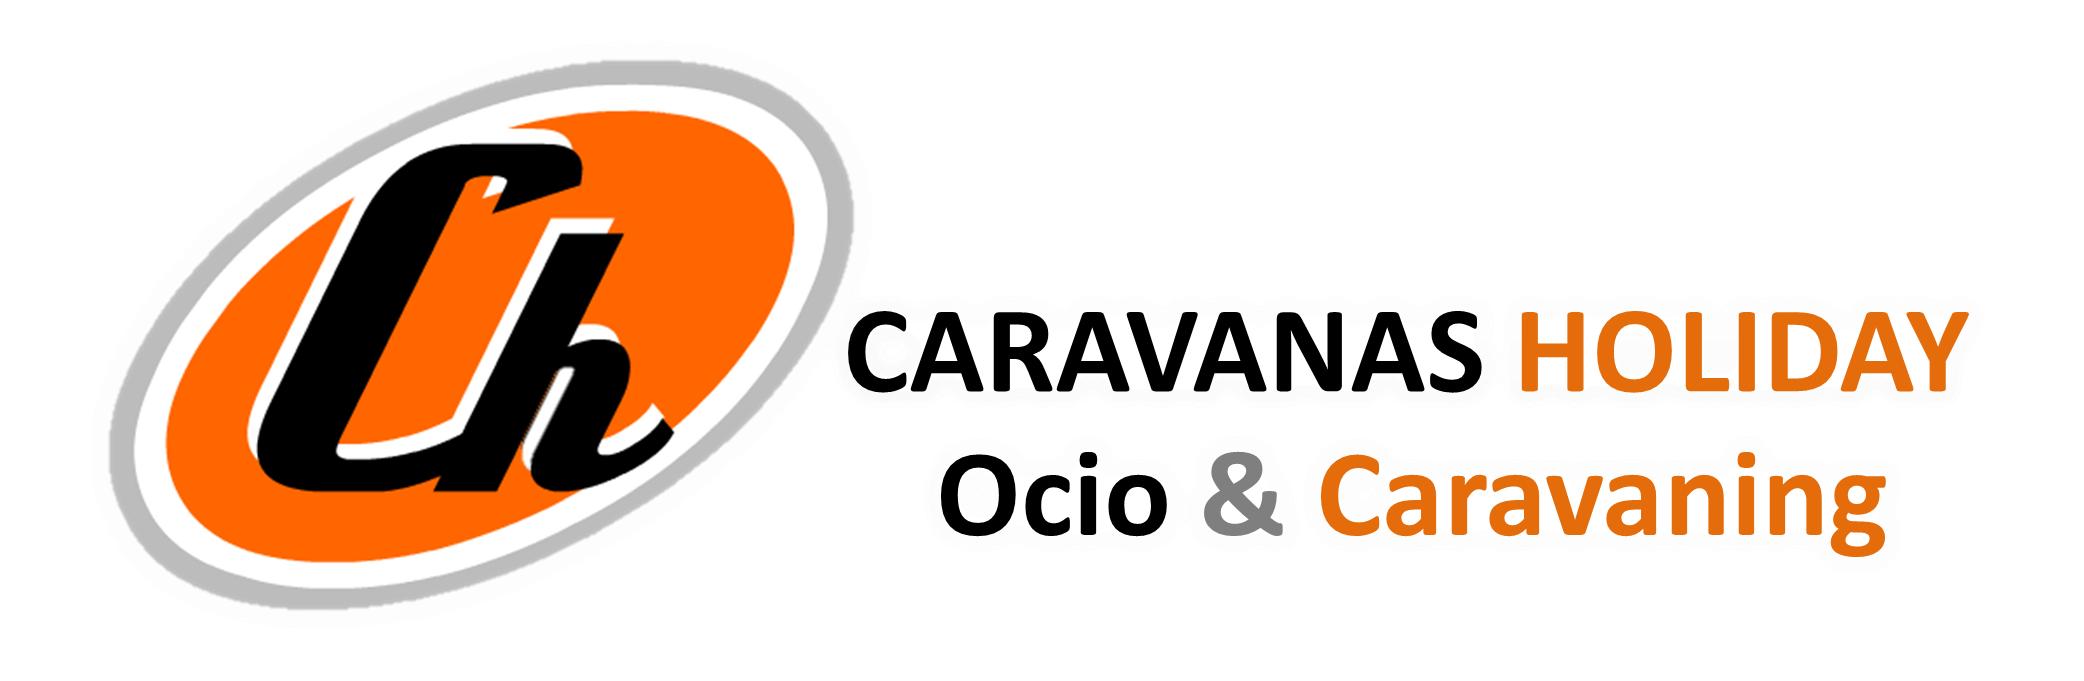 Caravanas Holiday